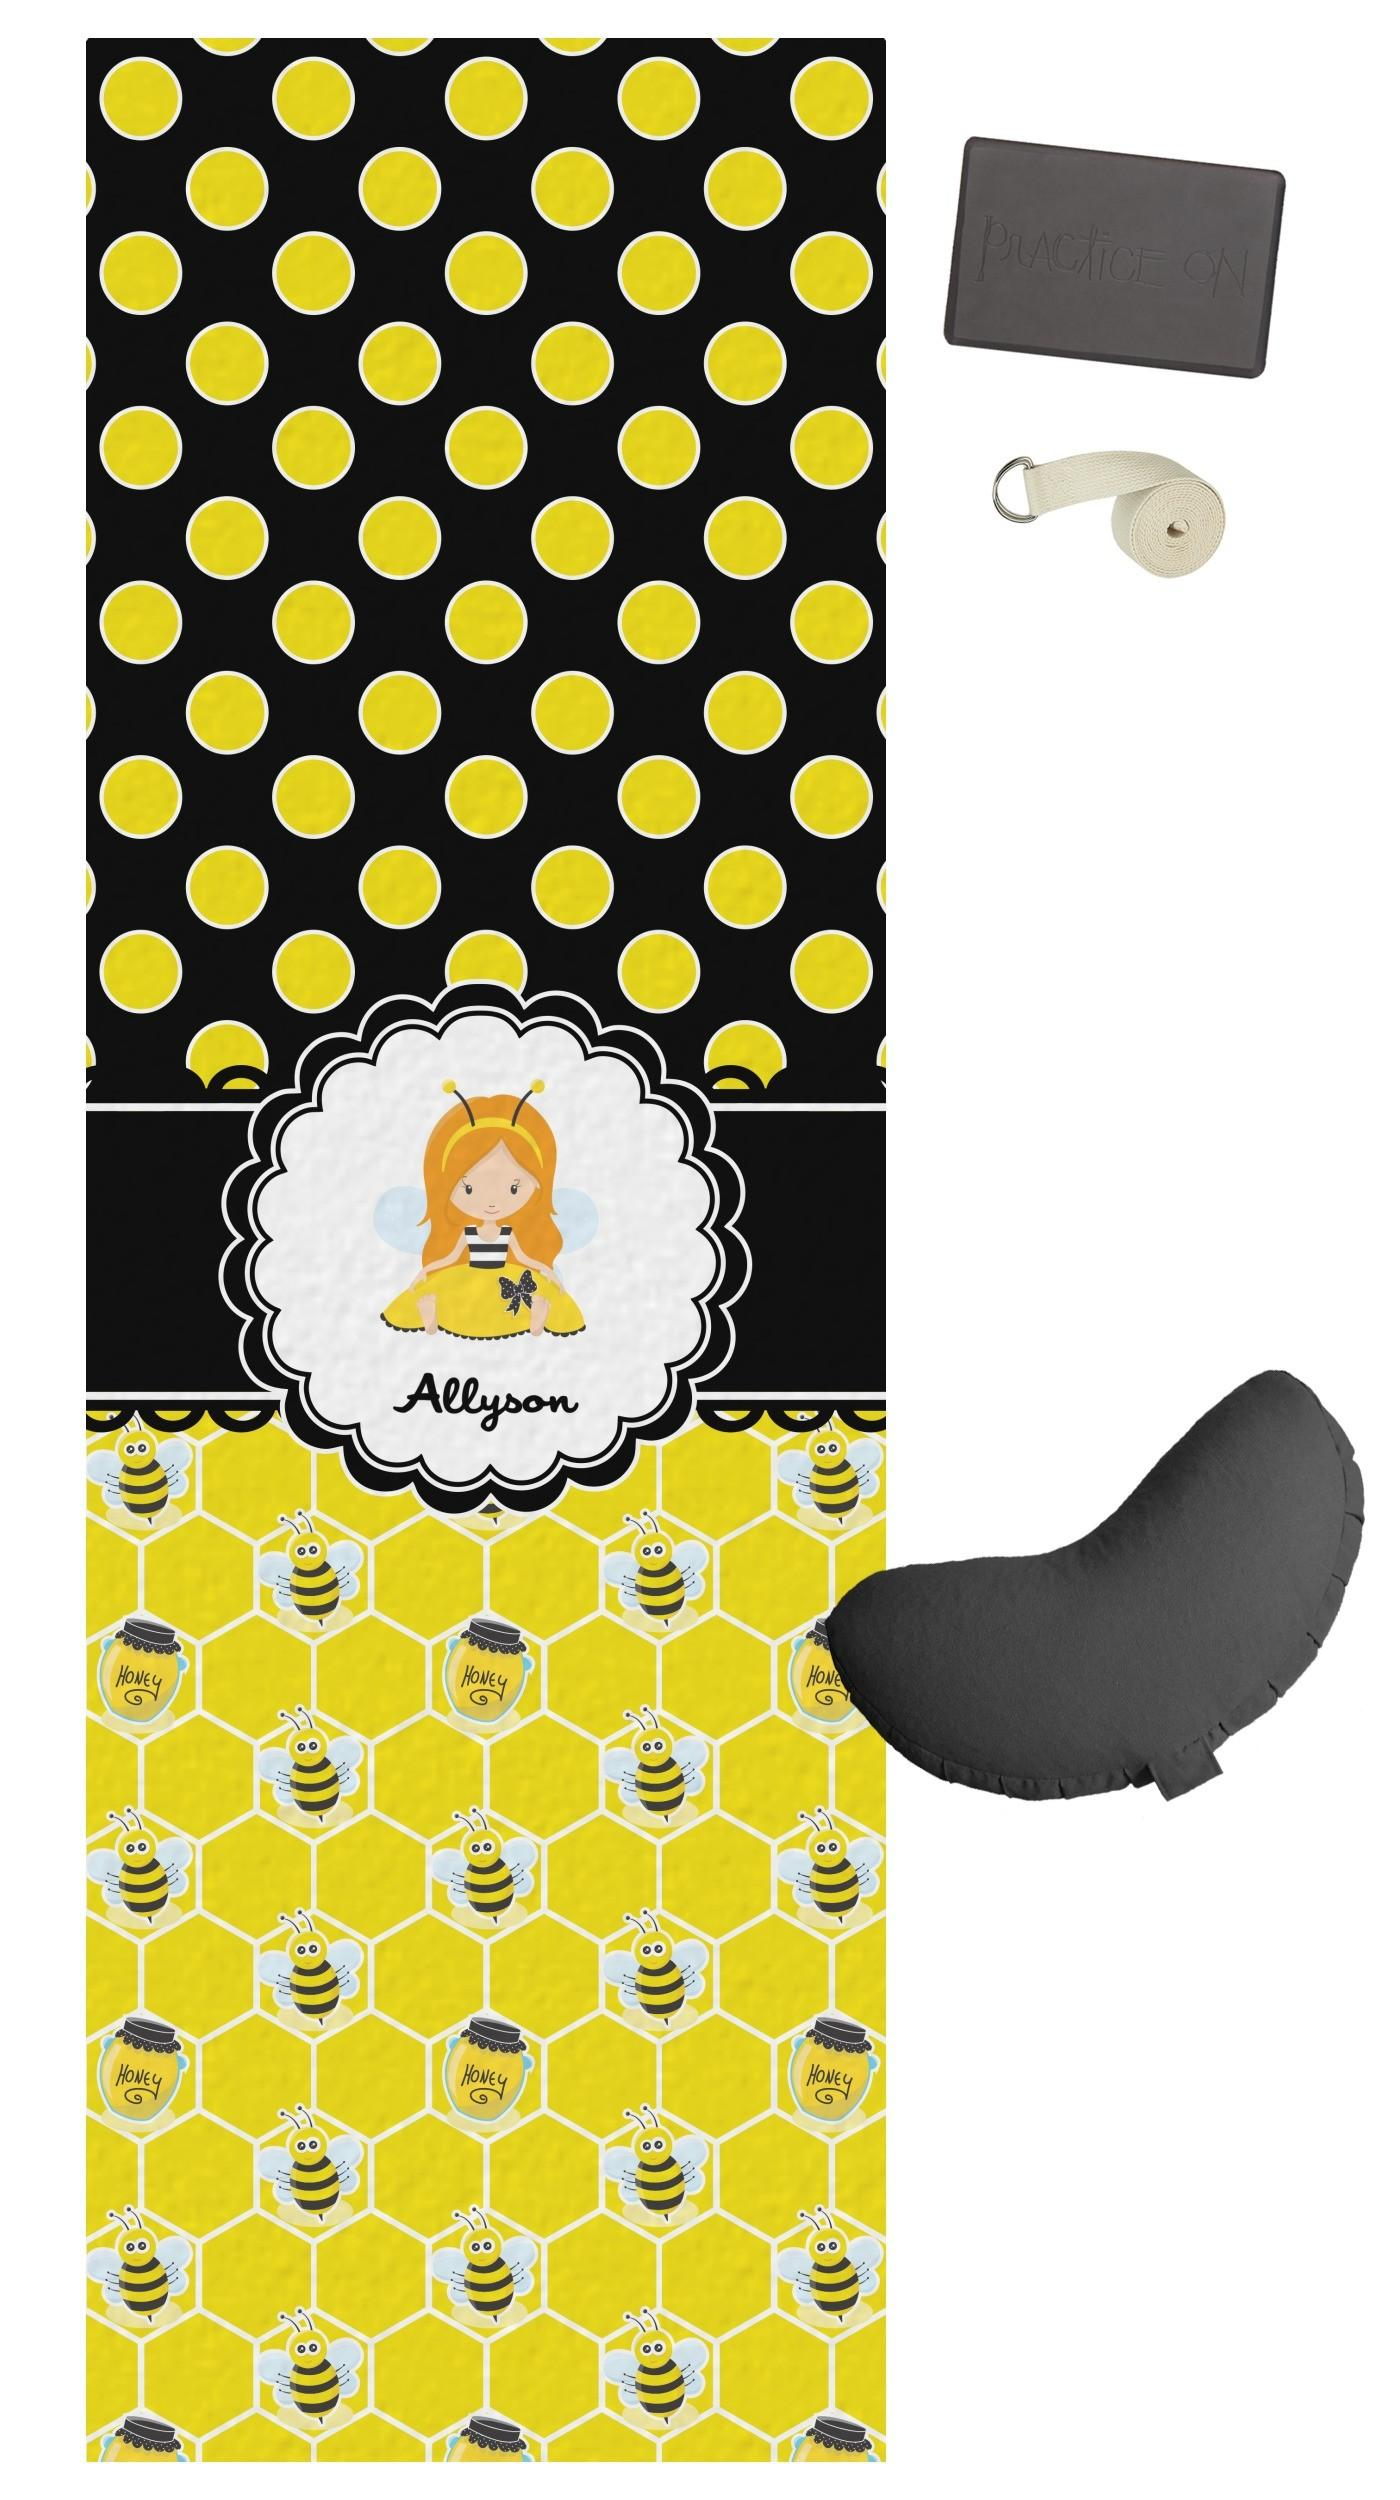 Honeycomb Bees Polka Dots Yoga Mat Personalized